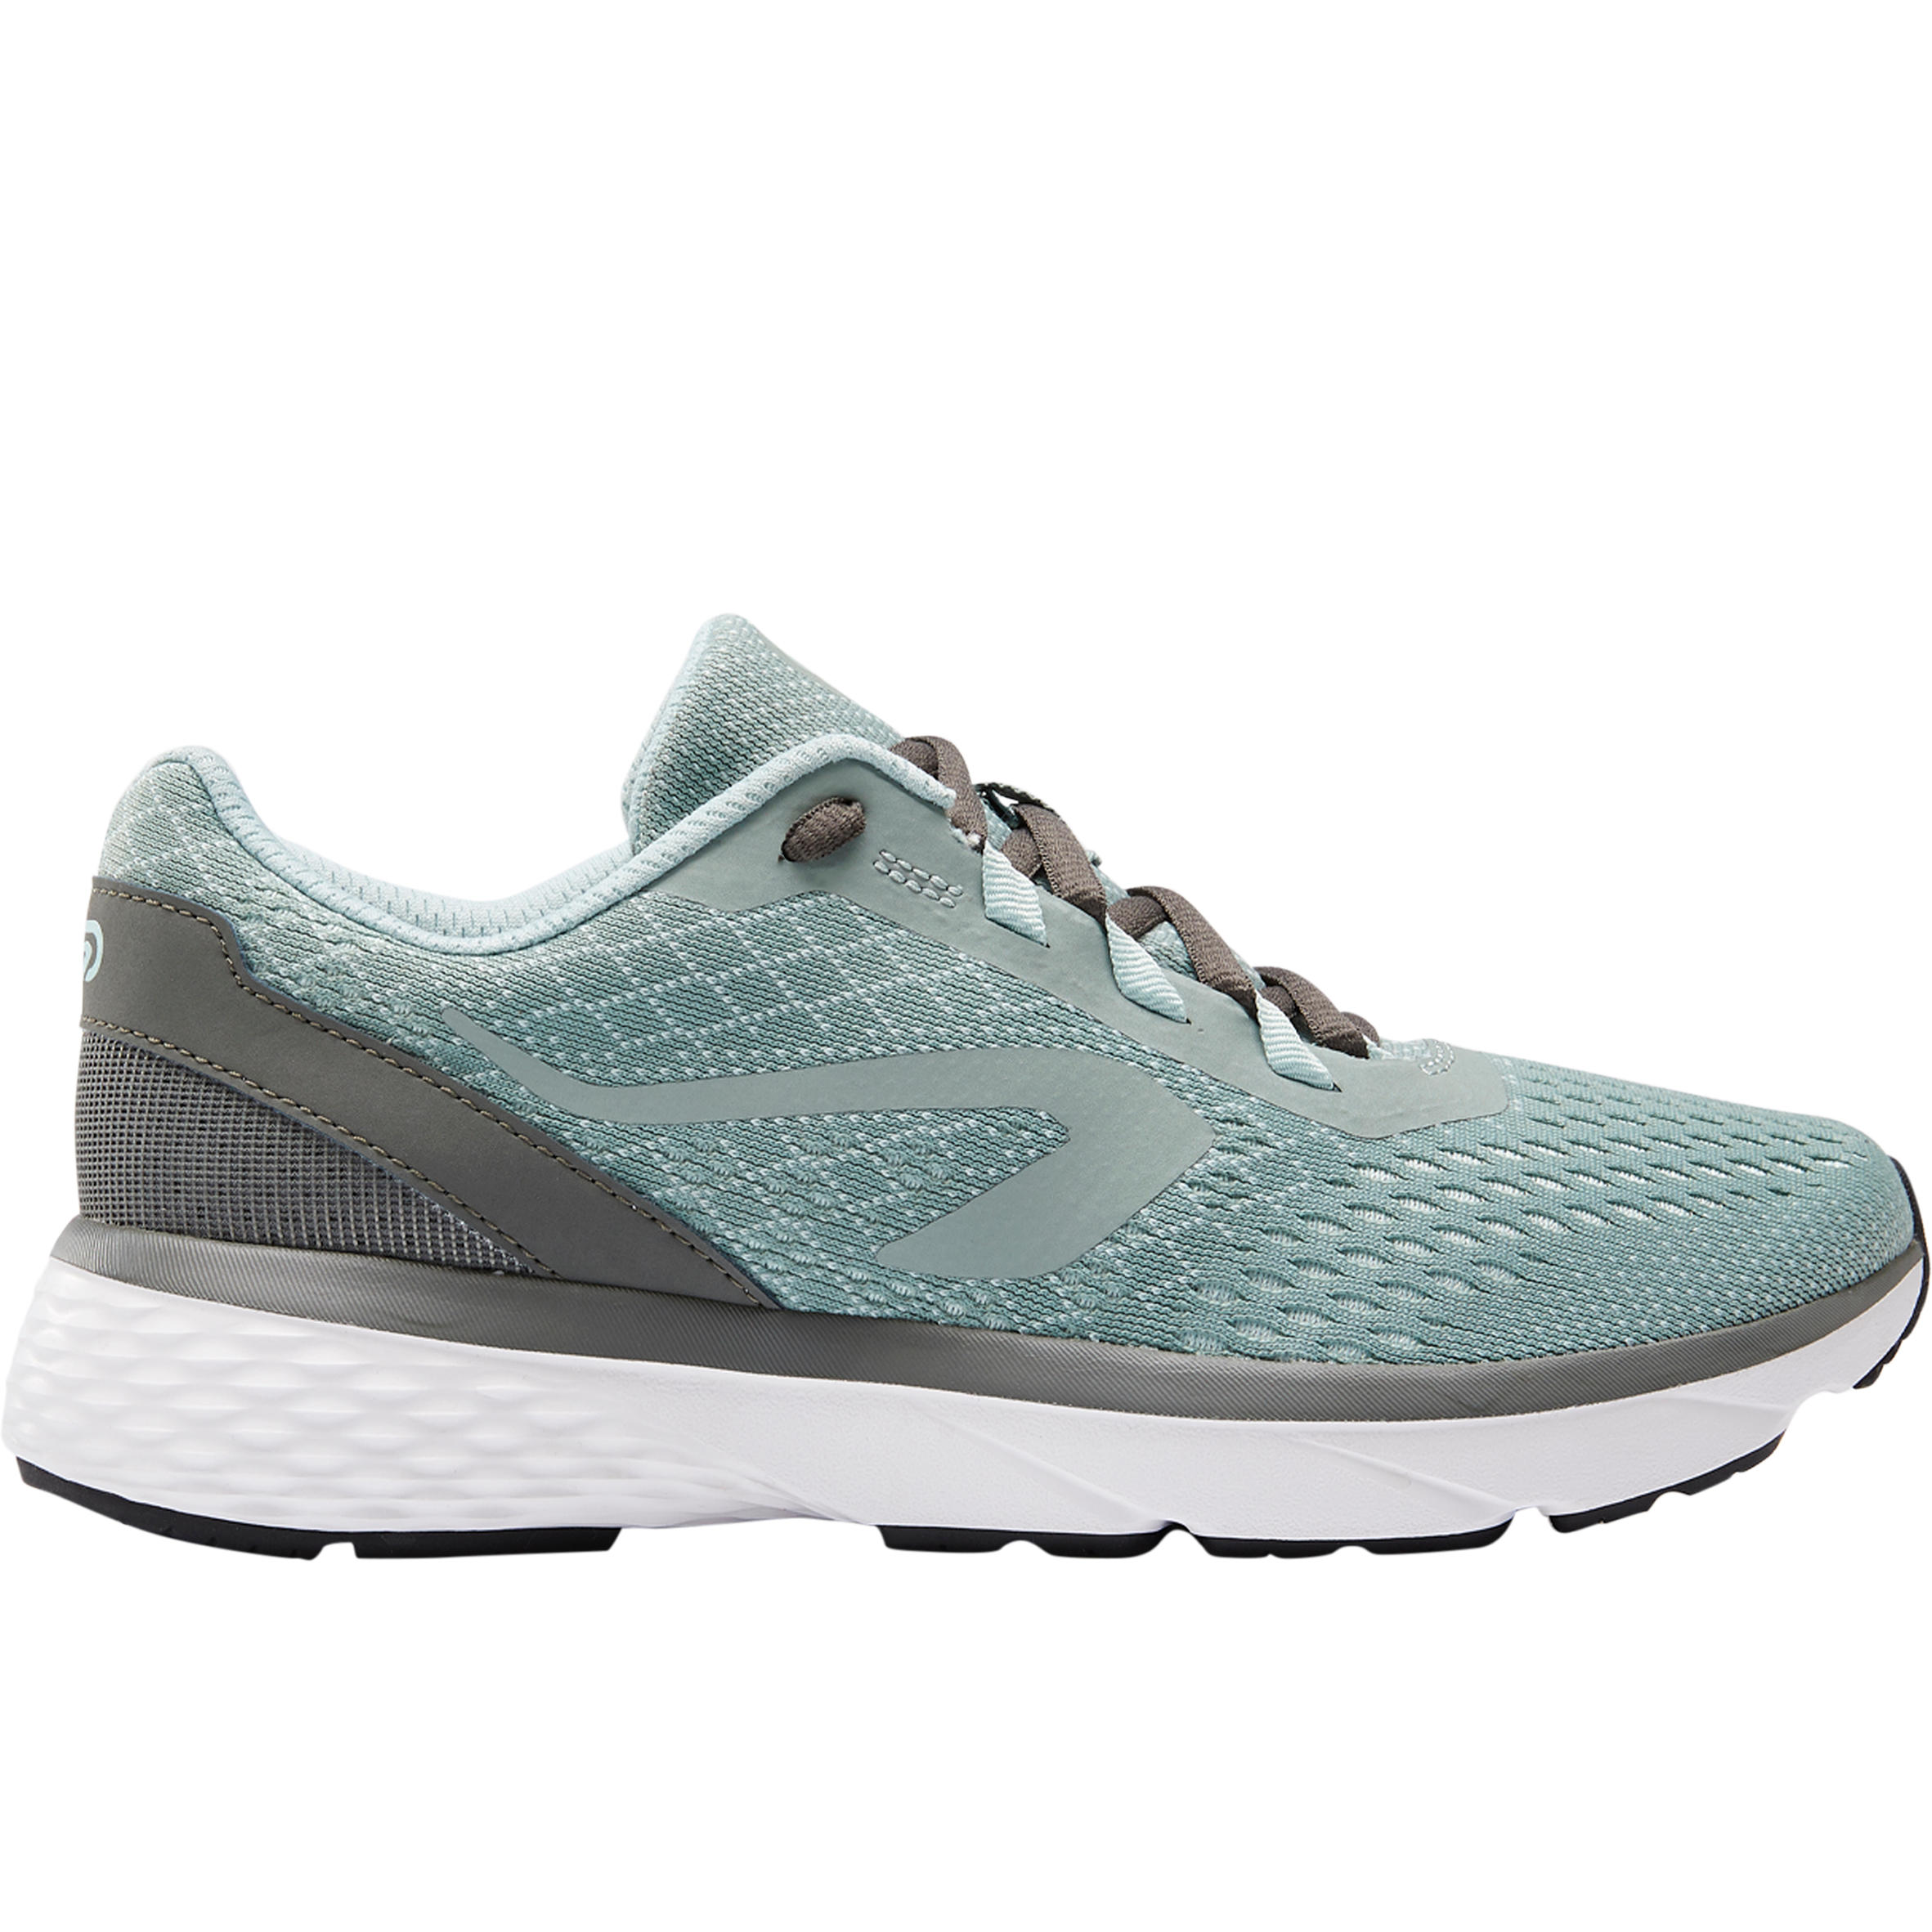 Running Shoes - Running Shoes For Men